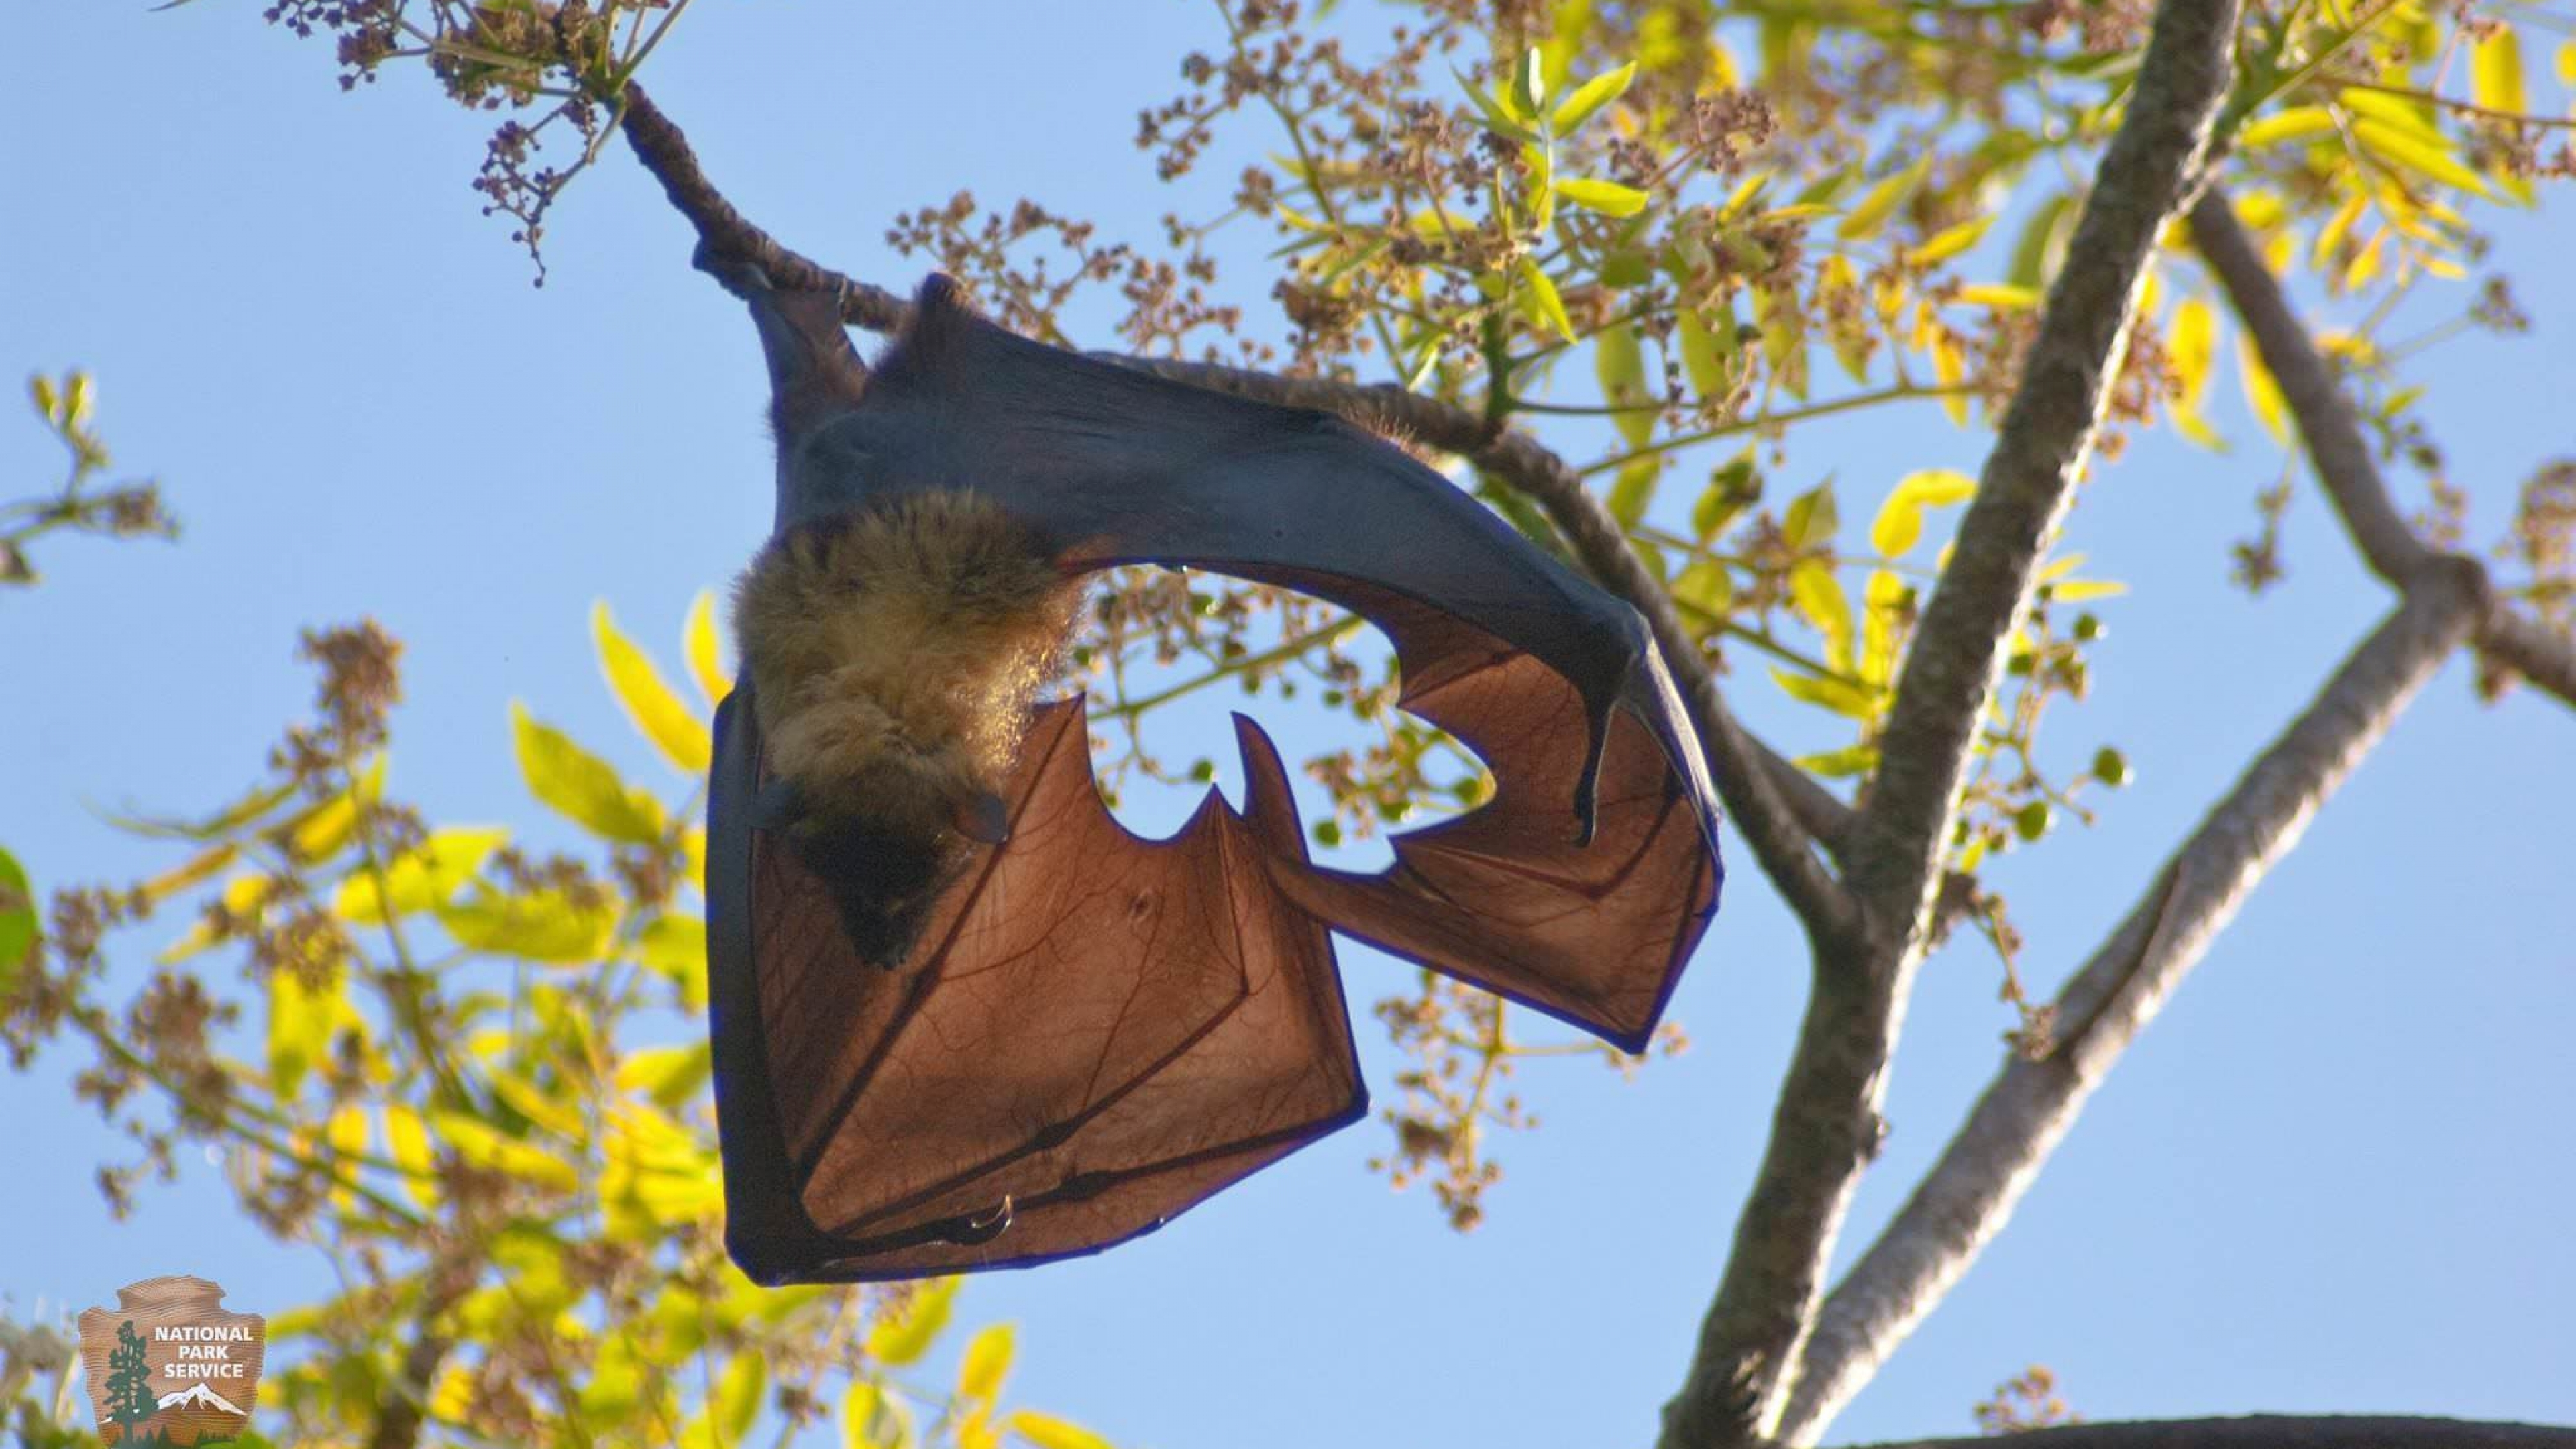 Batty for Bats in National Parks | National Park Foundation on ranch art, ranch modular homes, floor plans, ranch log homes, townhouse plans, summer cottage plans, log cabin plans, 3 car garage plans, ranch style homes, ranch luxury homes, ranch backyard, strip mall plans,